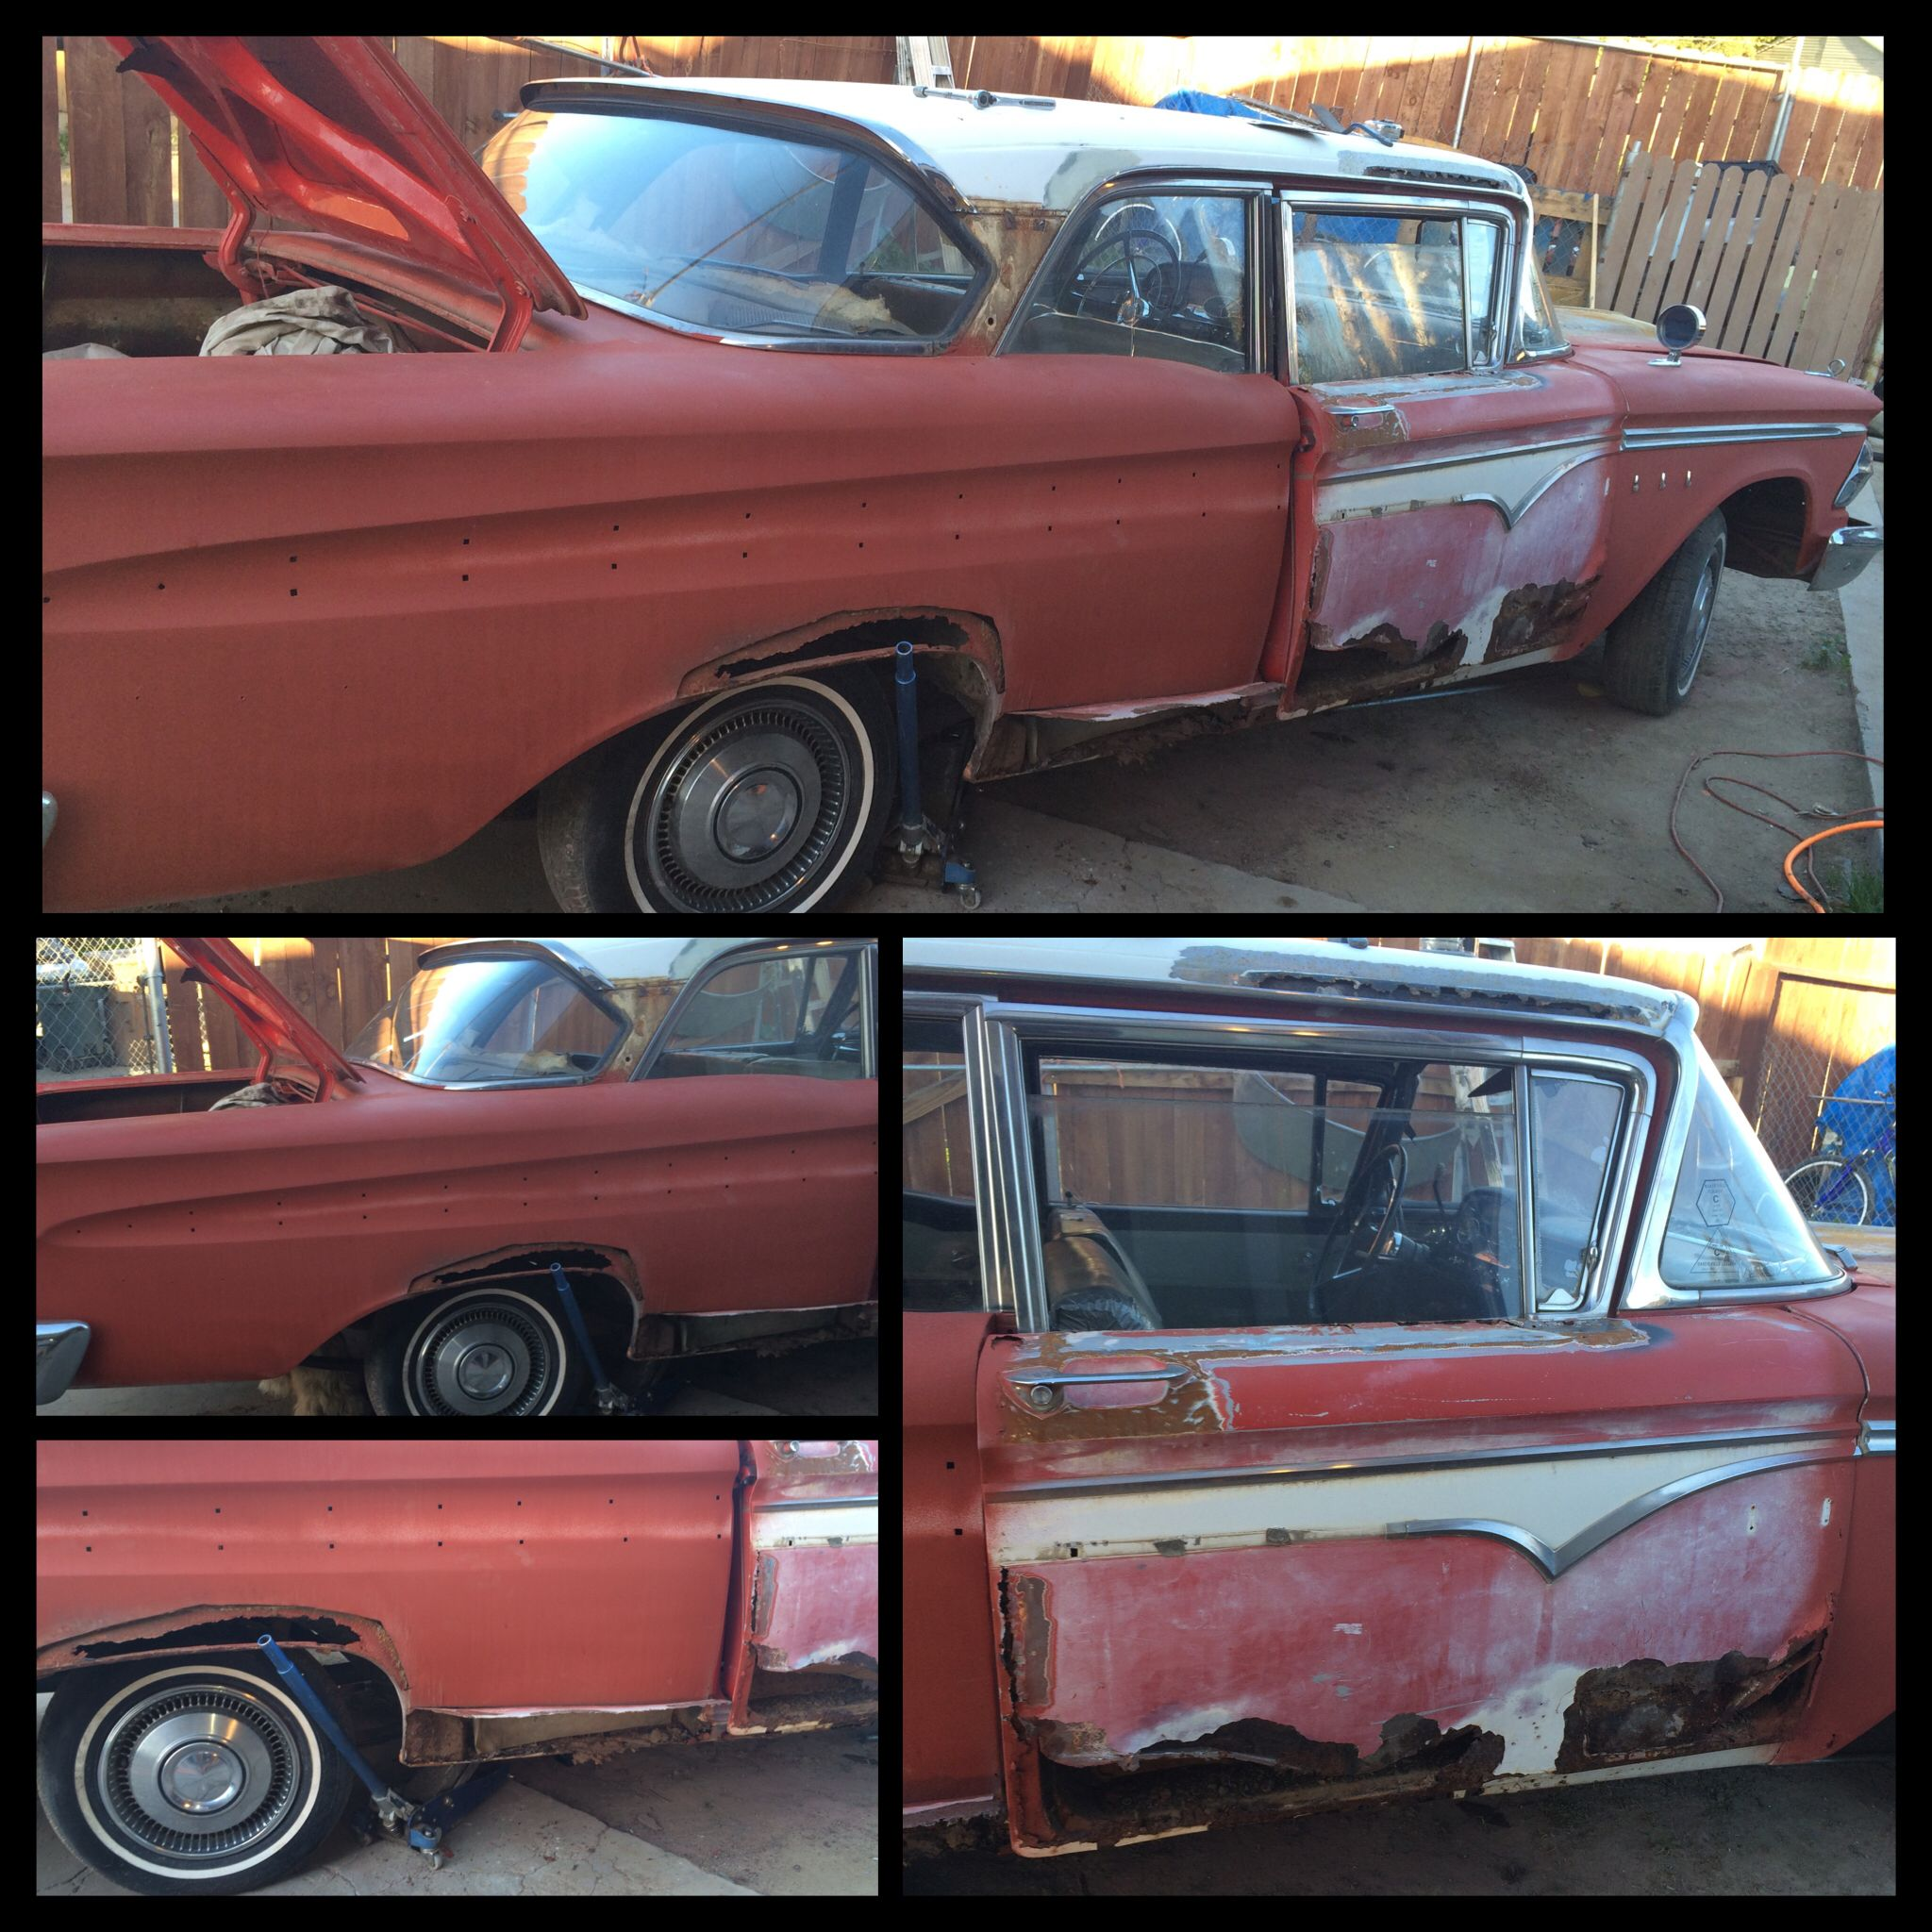 My fathers project he is working on right now: 1959 Edsel, she needs lots of work.